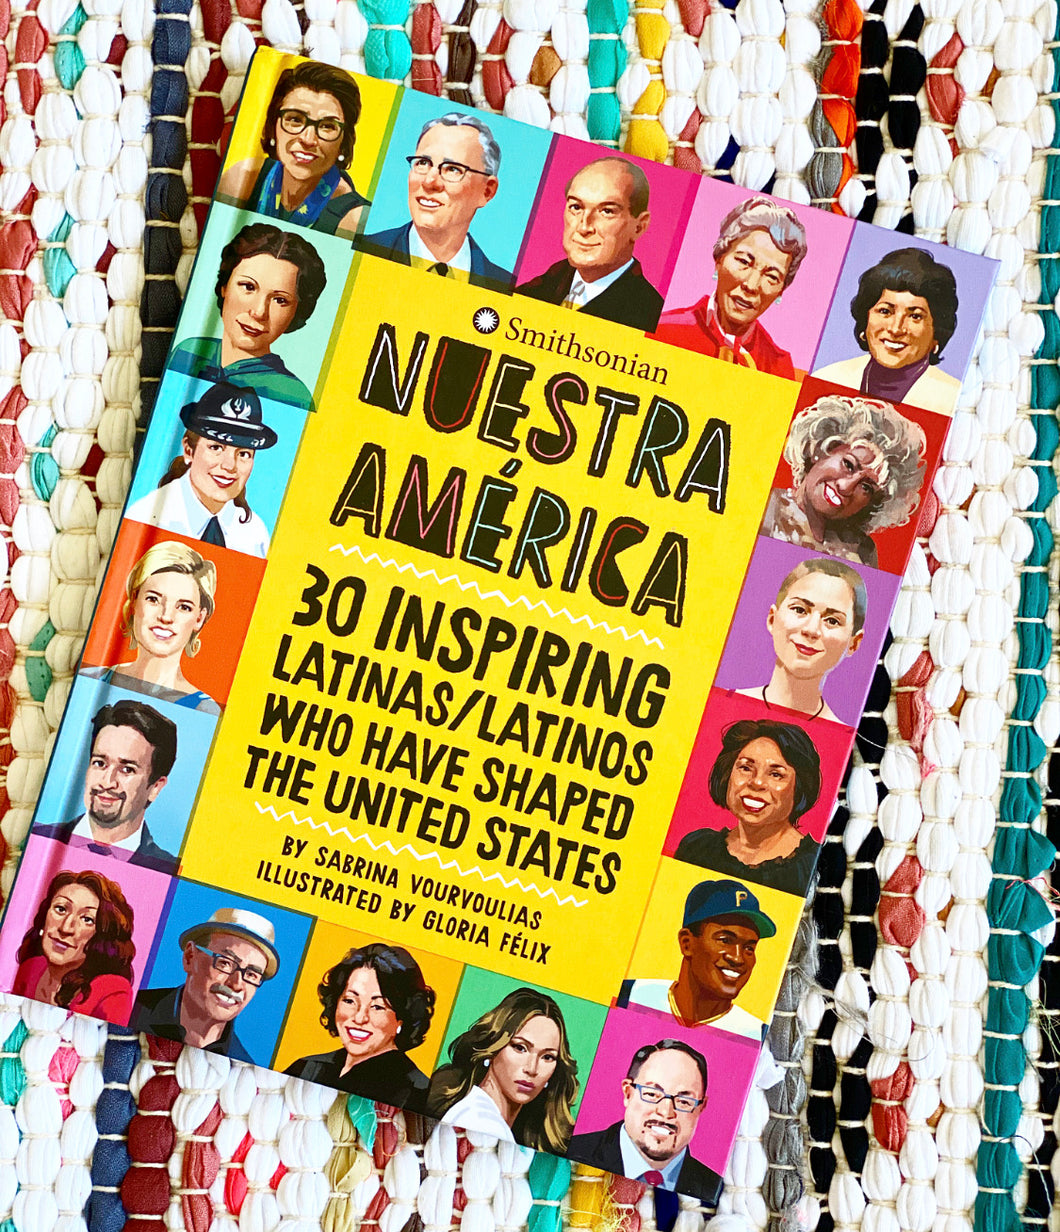 Nuestra América: 30 Inspiring Latinas/Latinos Who Have Shaped the United States | Sabrina Vourvoulias